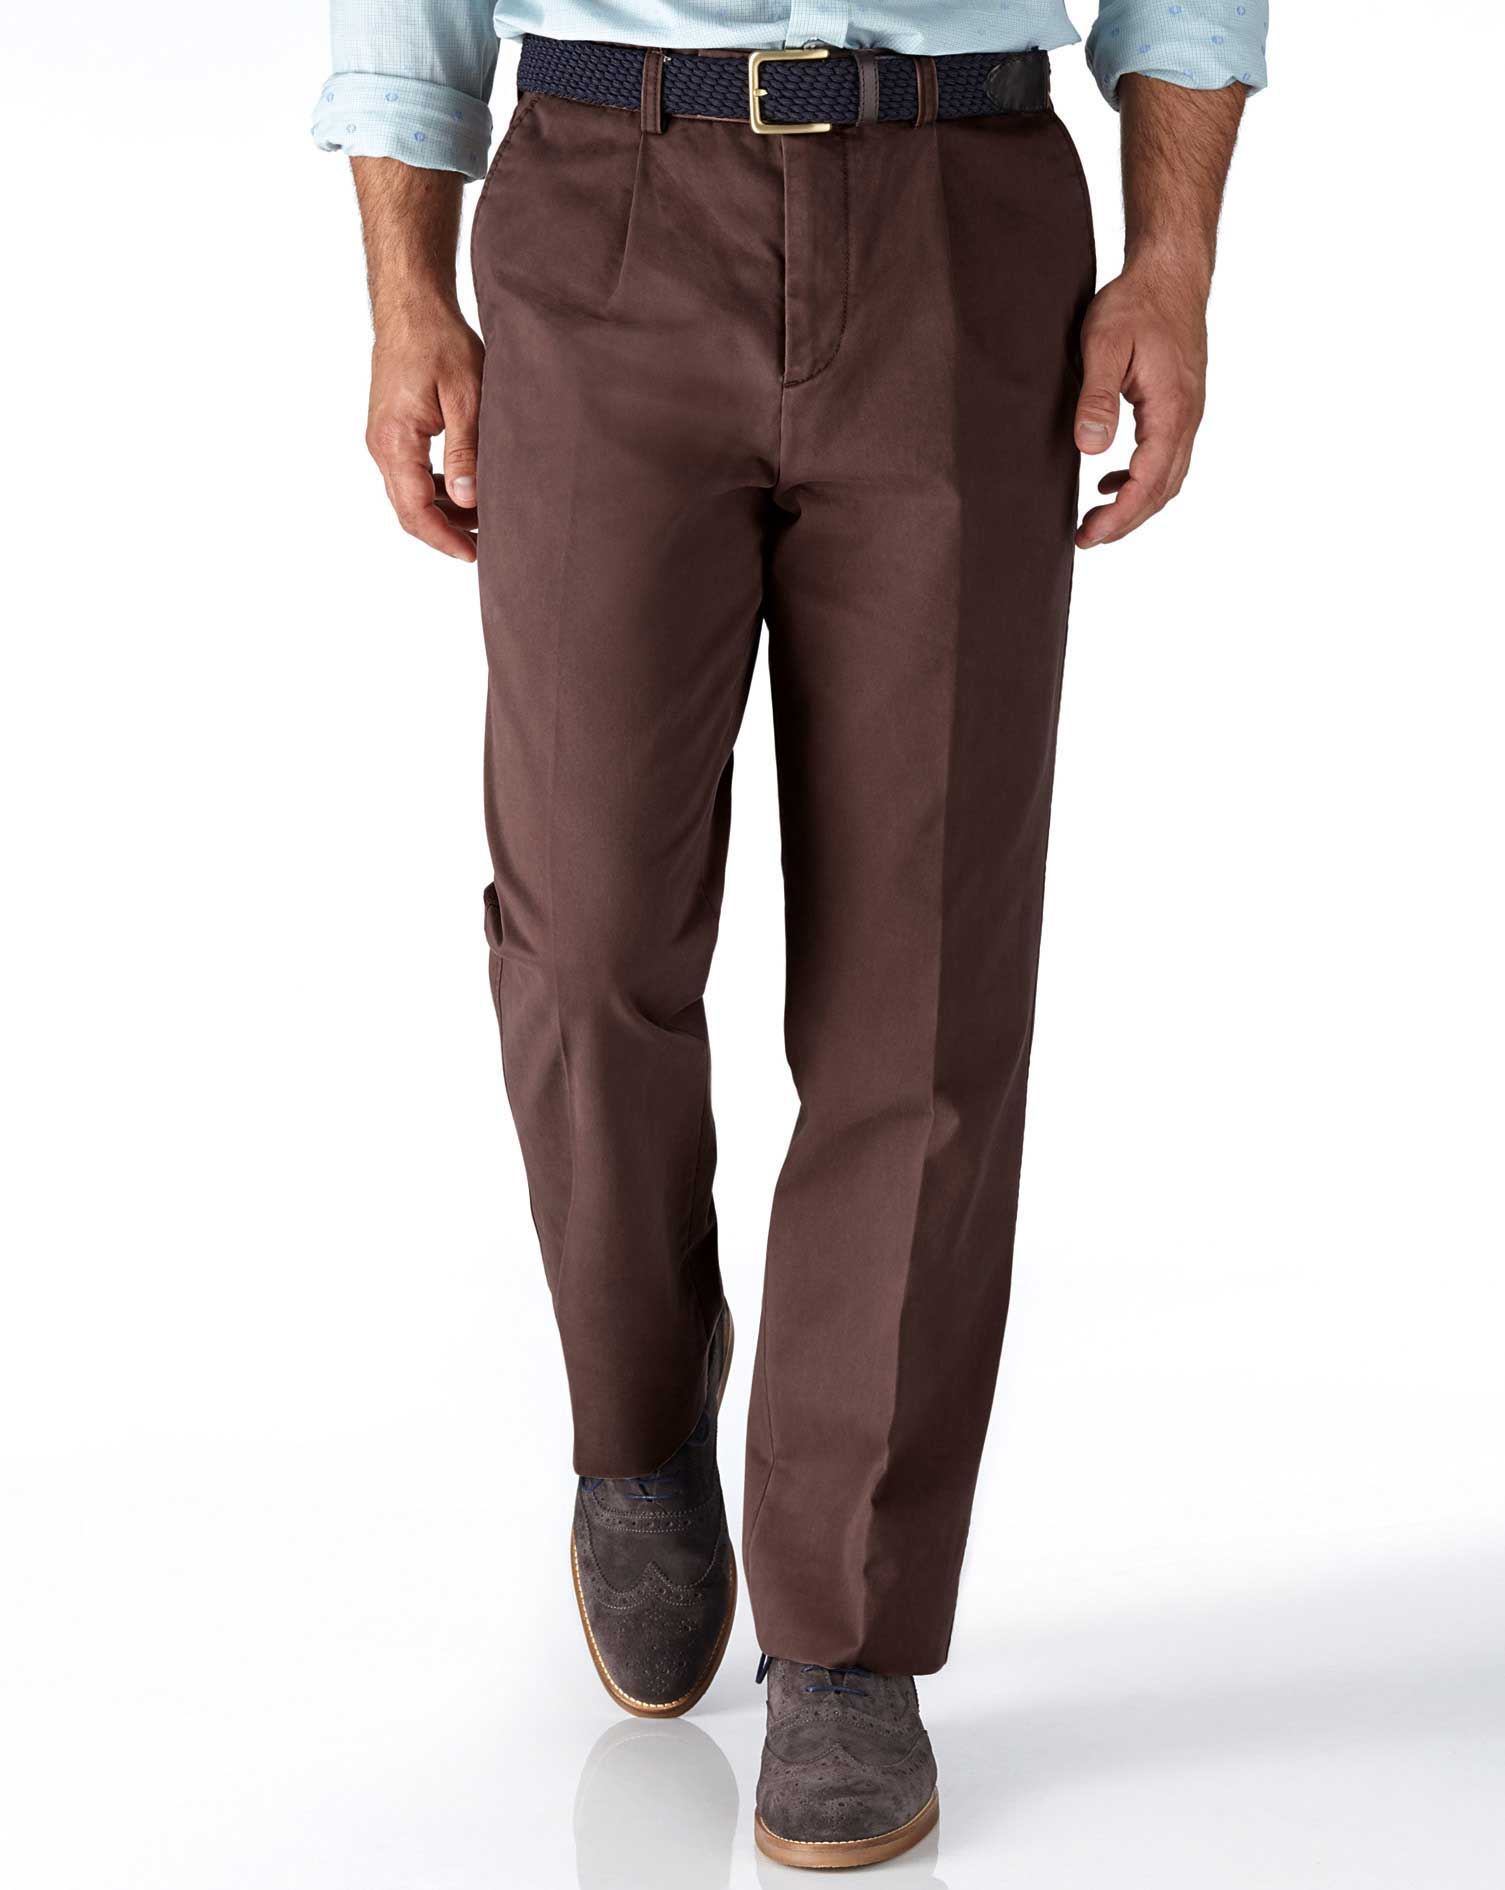 Brown Classic Fit Single Pleat Cotton Chino Trousers Size W42 L38 by Charles Tyrwhitt